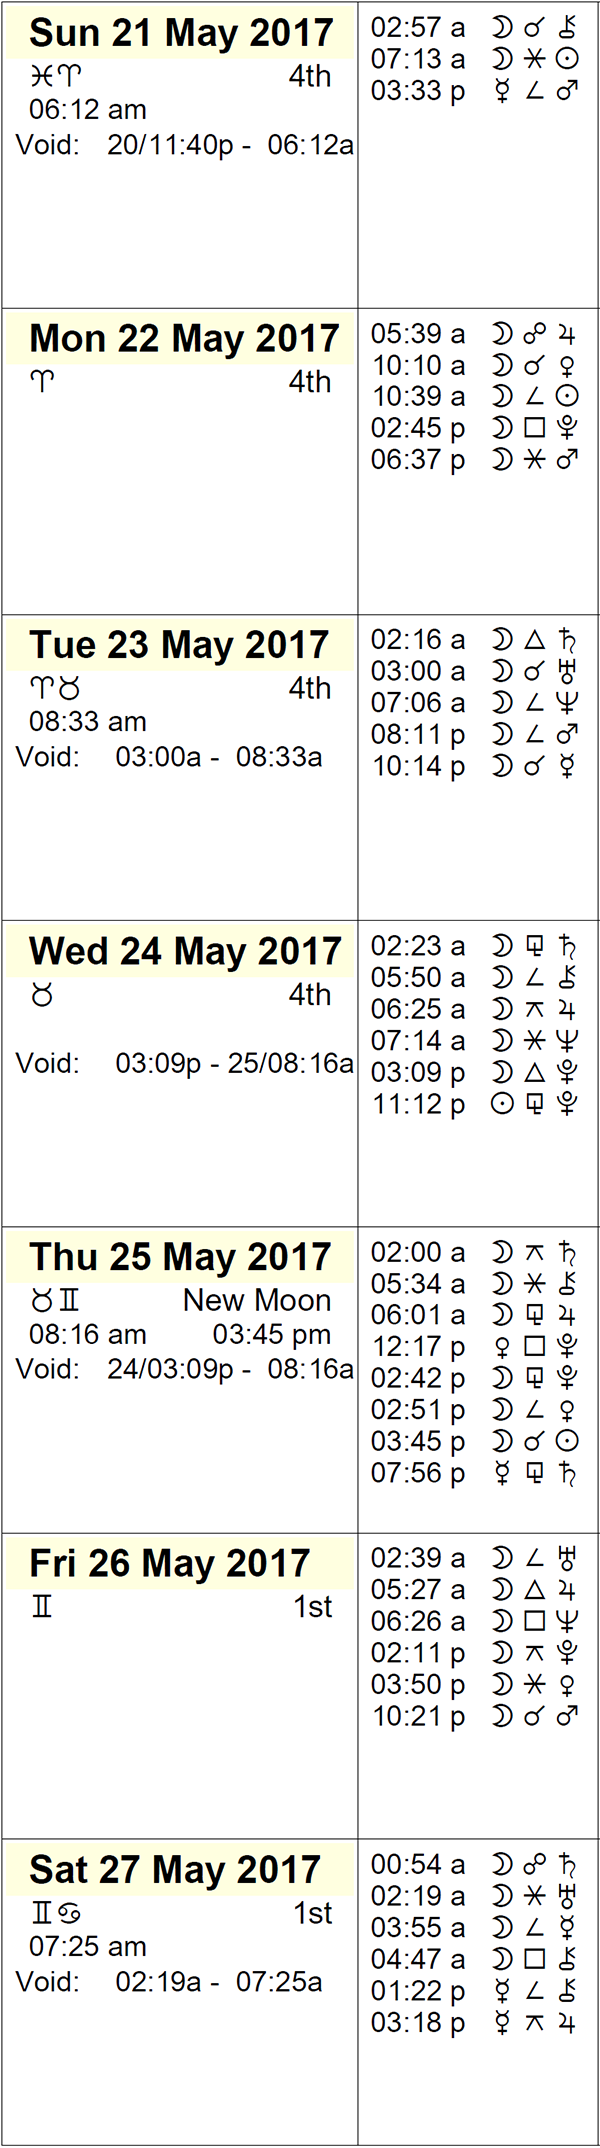 This Week in Astrology Calendar - May 21 to 27, 2017